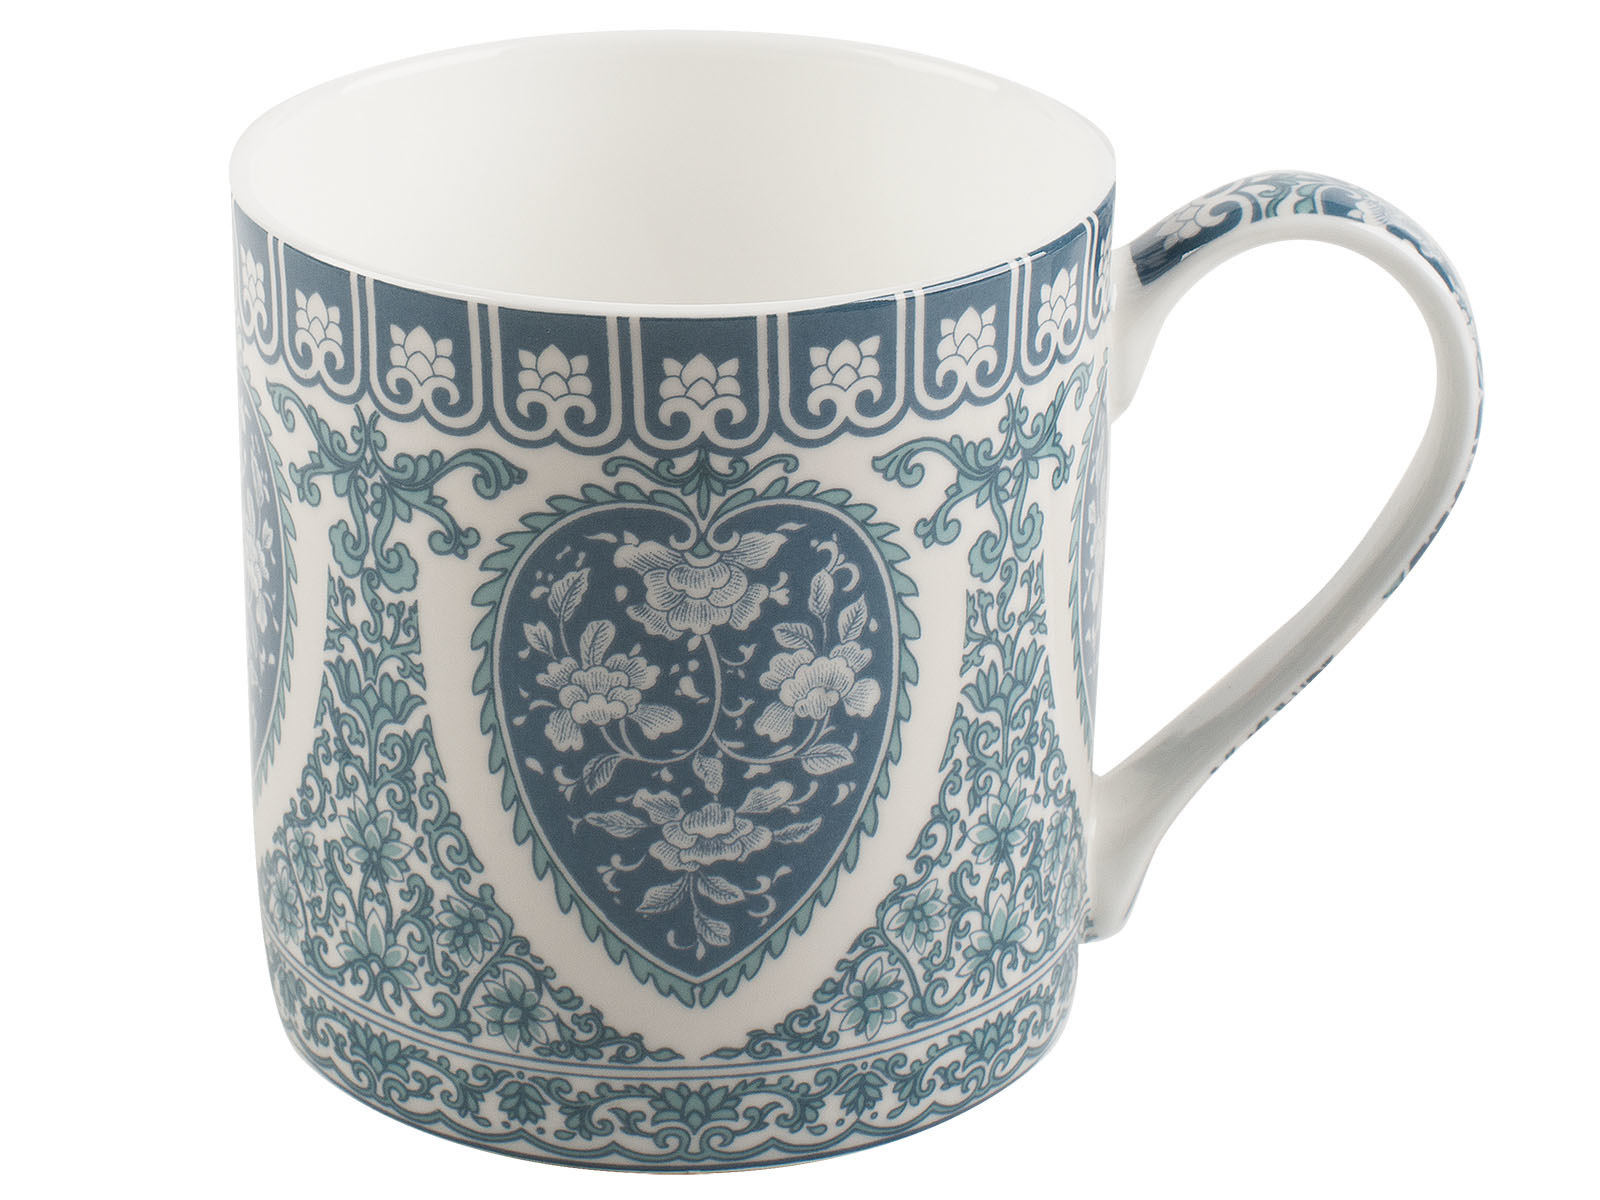 Victoria And Albert Owen Jones Peony Mug